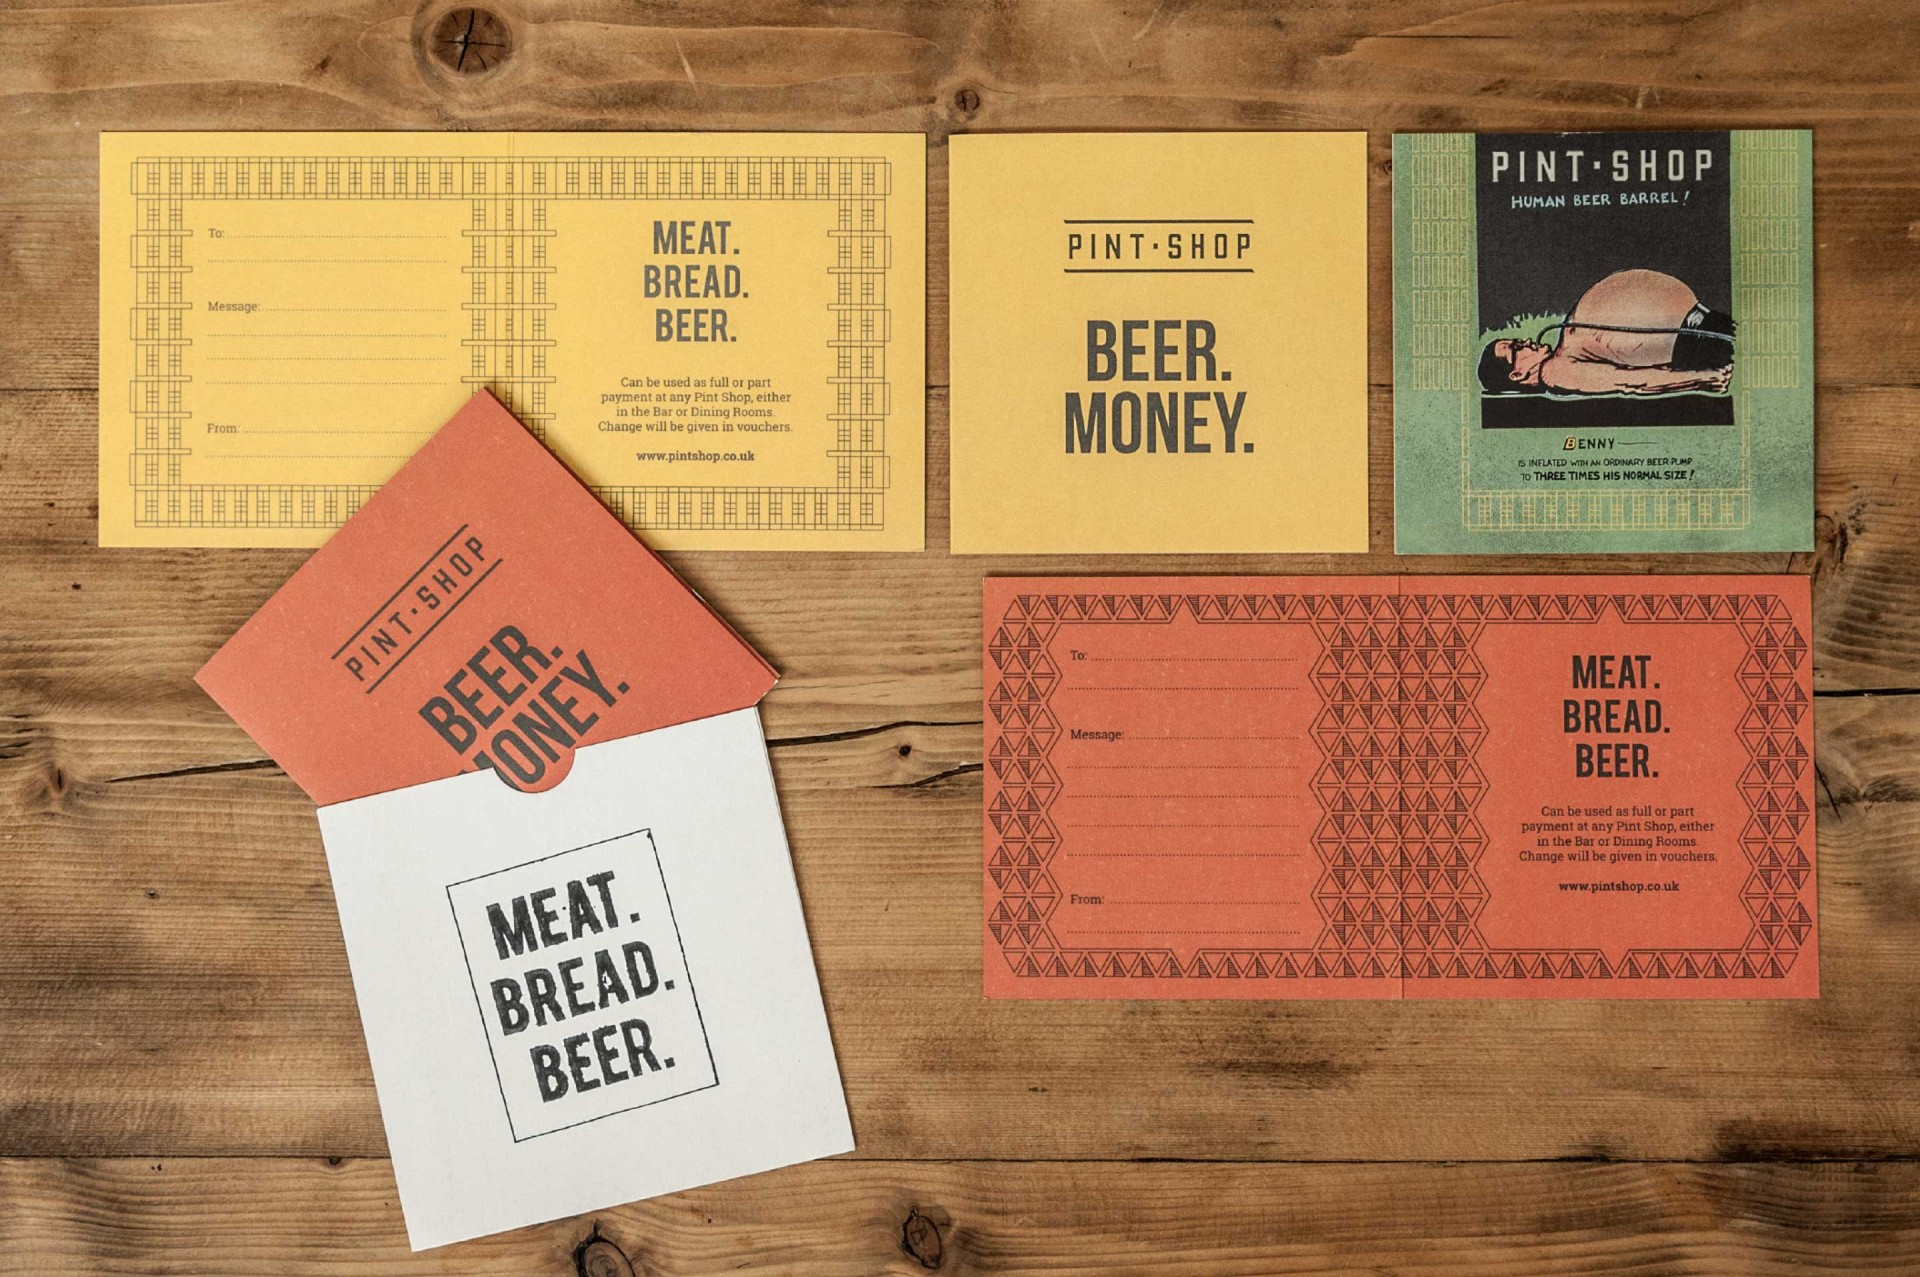 Various pieces of marketing collateral for Pint Shop